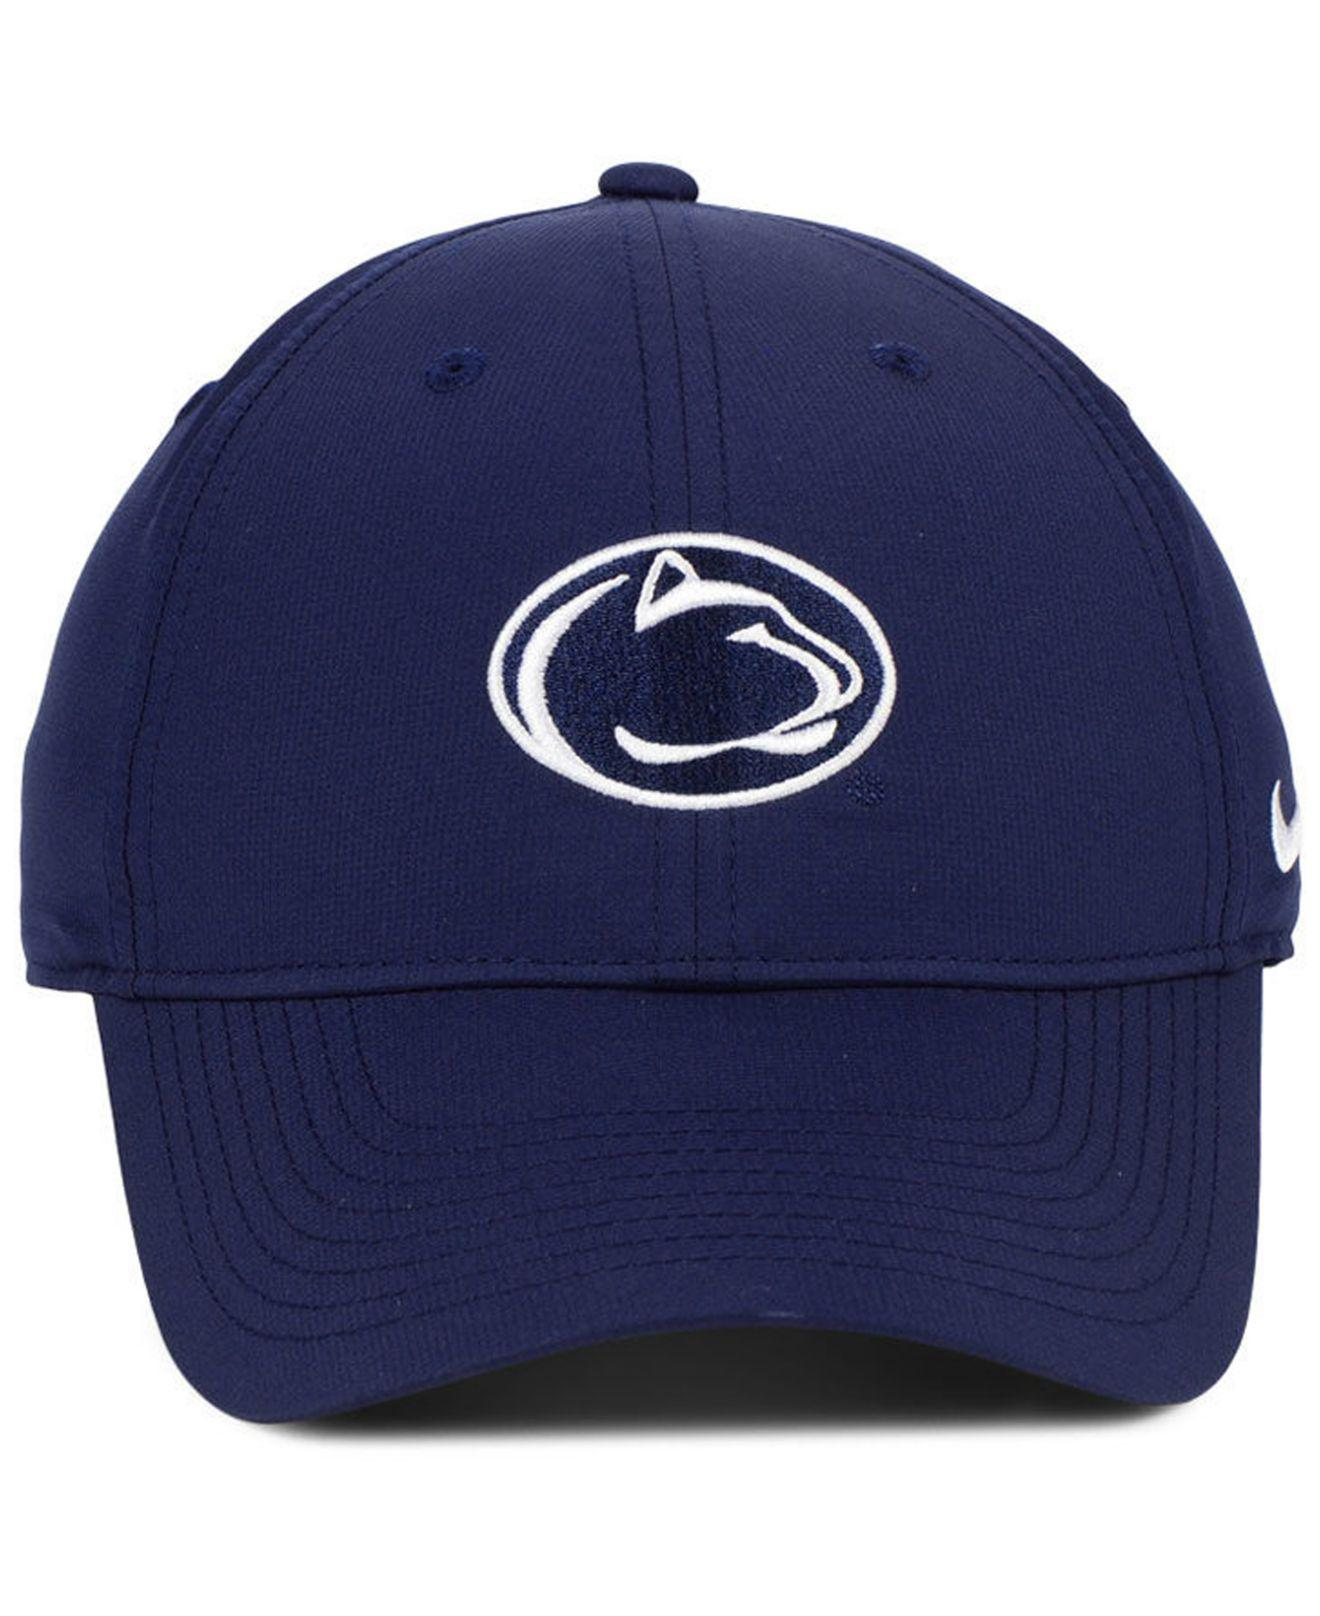 c45db26bcb618 Lyst - Nike Penn State Nittany Lions Dri-fit Adjustable Cap in Blue for Men